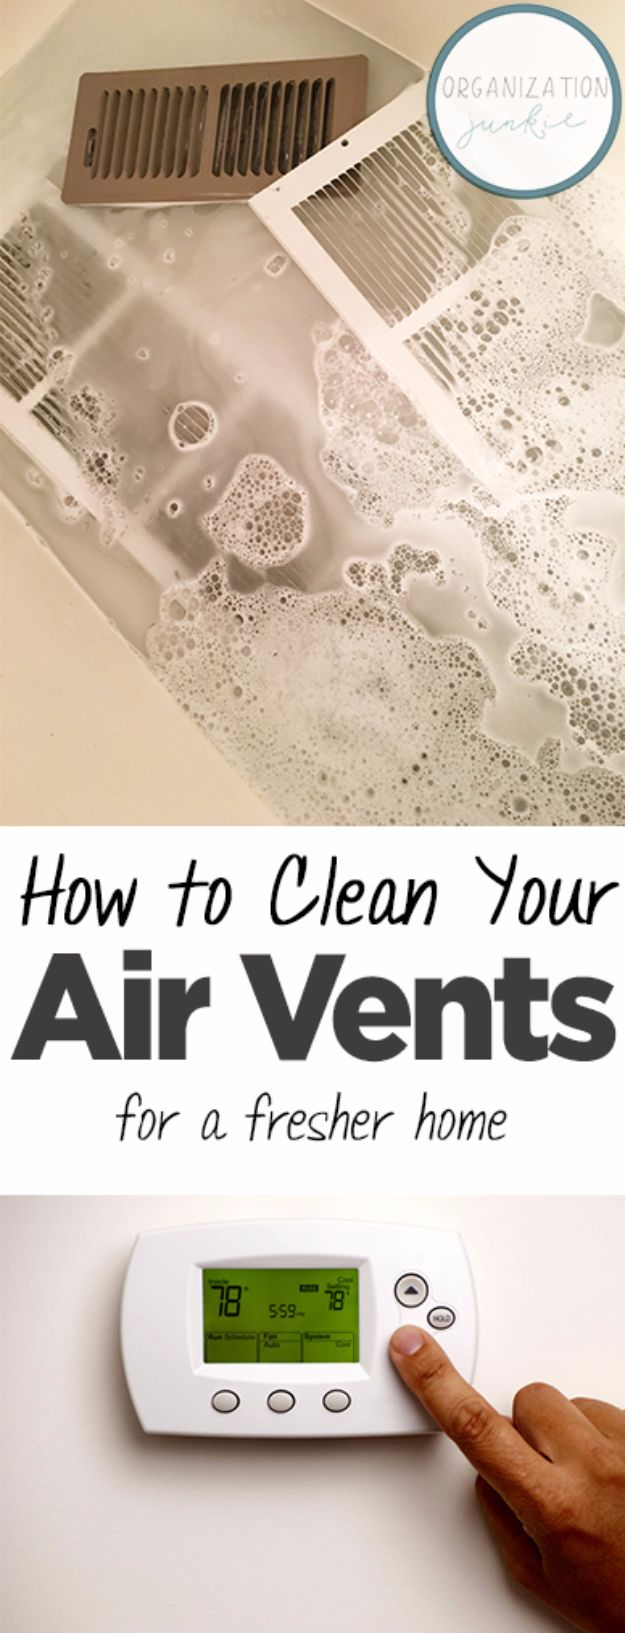 Cleaning Tips and Tricks - Clean Your Air Vents for a Fresher Home - Best Cleaning Hacks, Recipes and Tutorials - Daily Ways to Clean For Kitchen, For Couches, Bathroom, Bedroom, Laundry, Floors, Furniture, Windows, Cleaners and More for Cleaning Your Home- Quick Ideas for Lazy People - Cool Cleaning Hack Tutorial